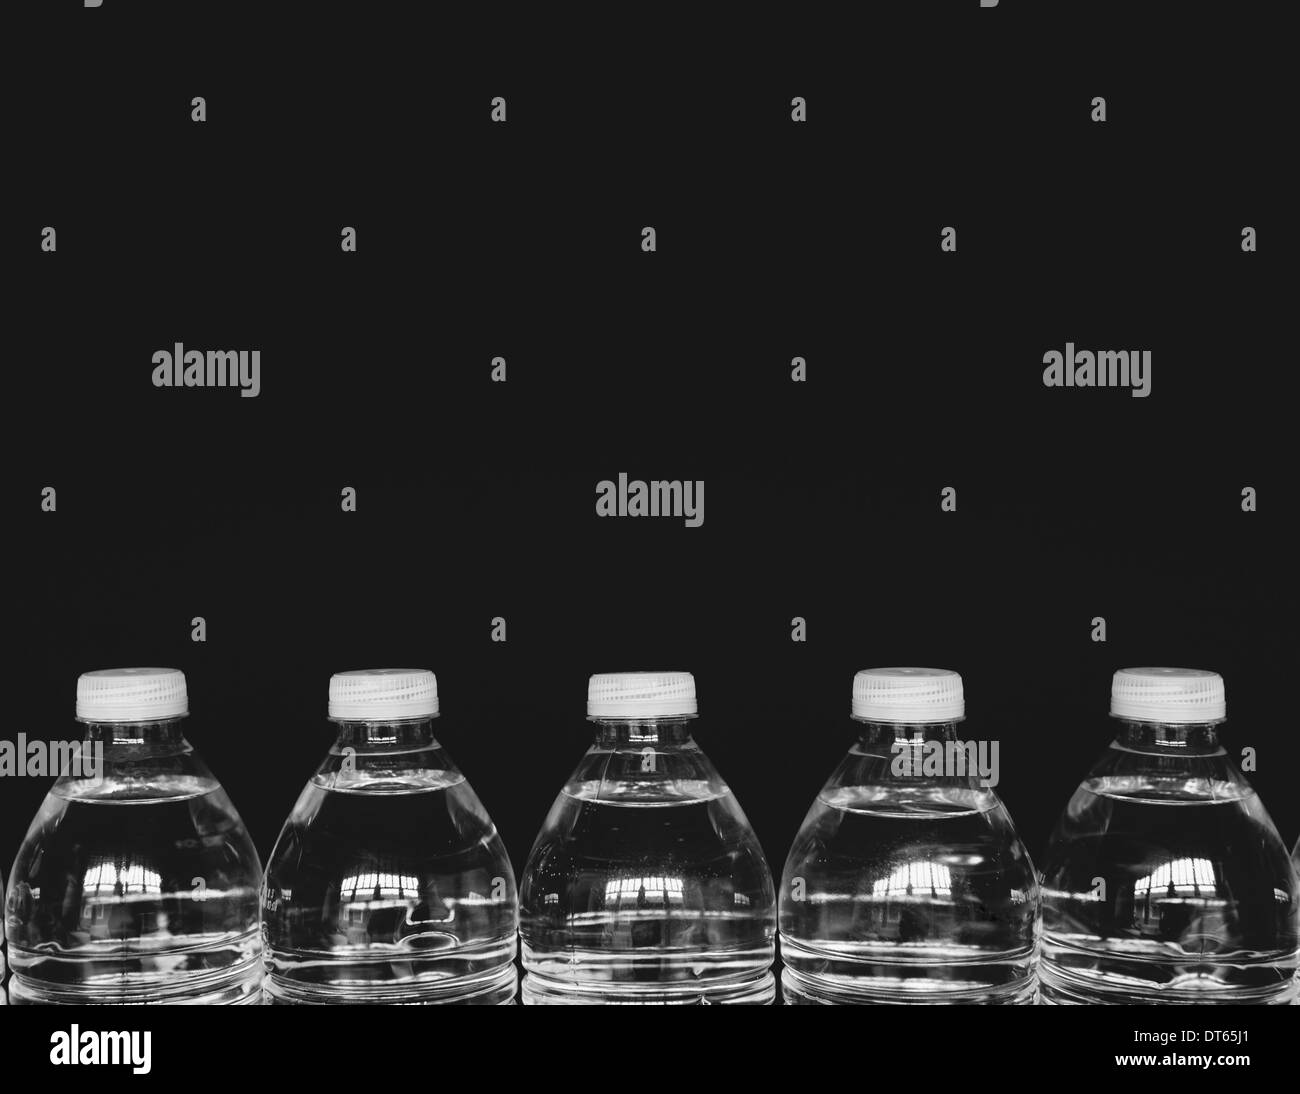 Row of clear, plastic water bottles filled with filtered water - Stock Image